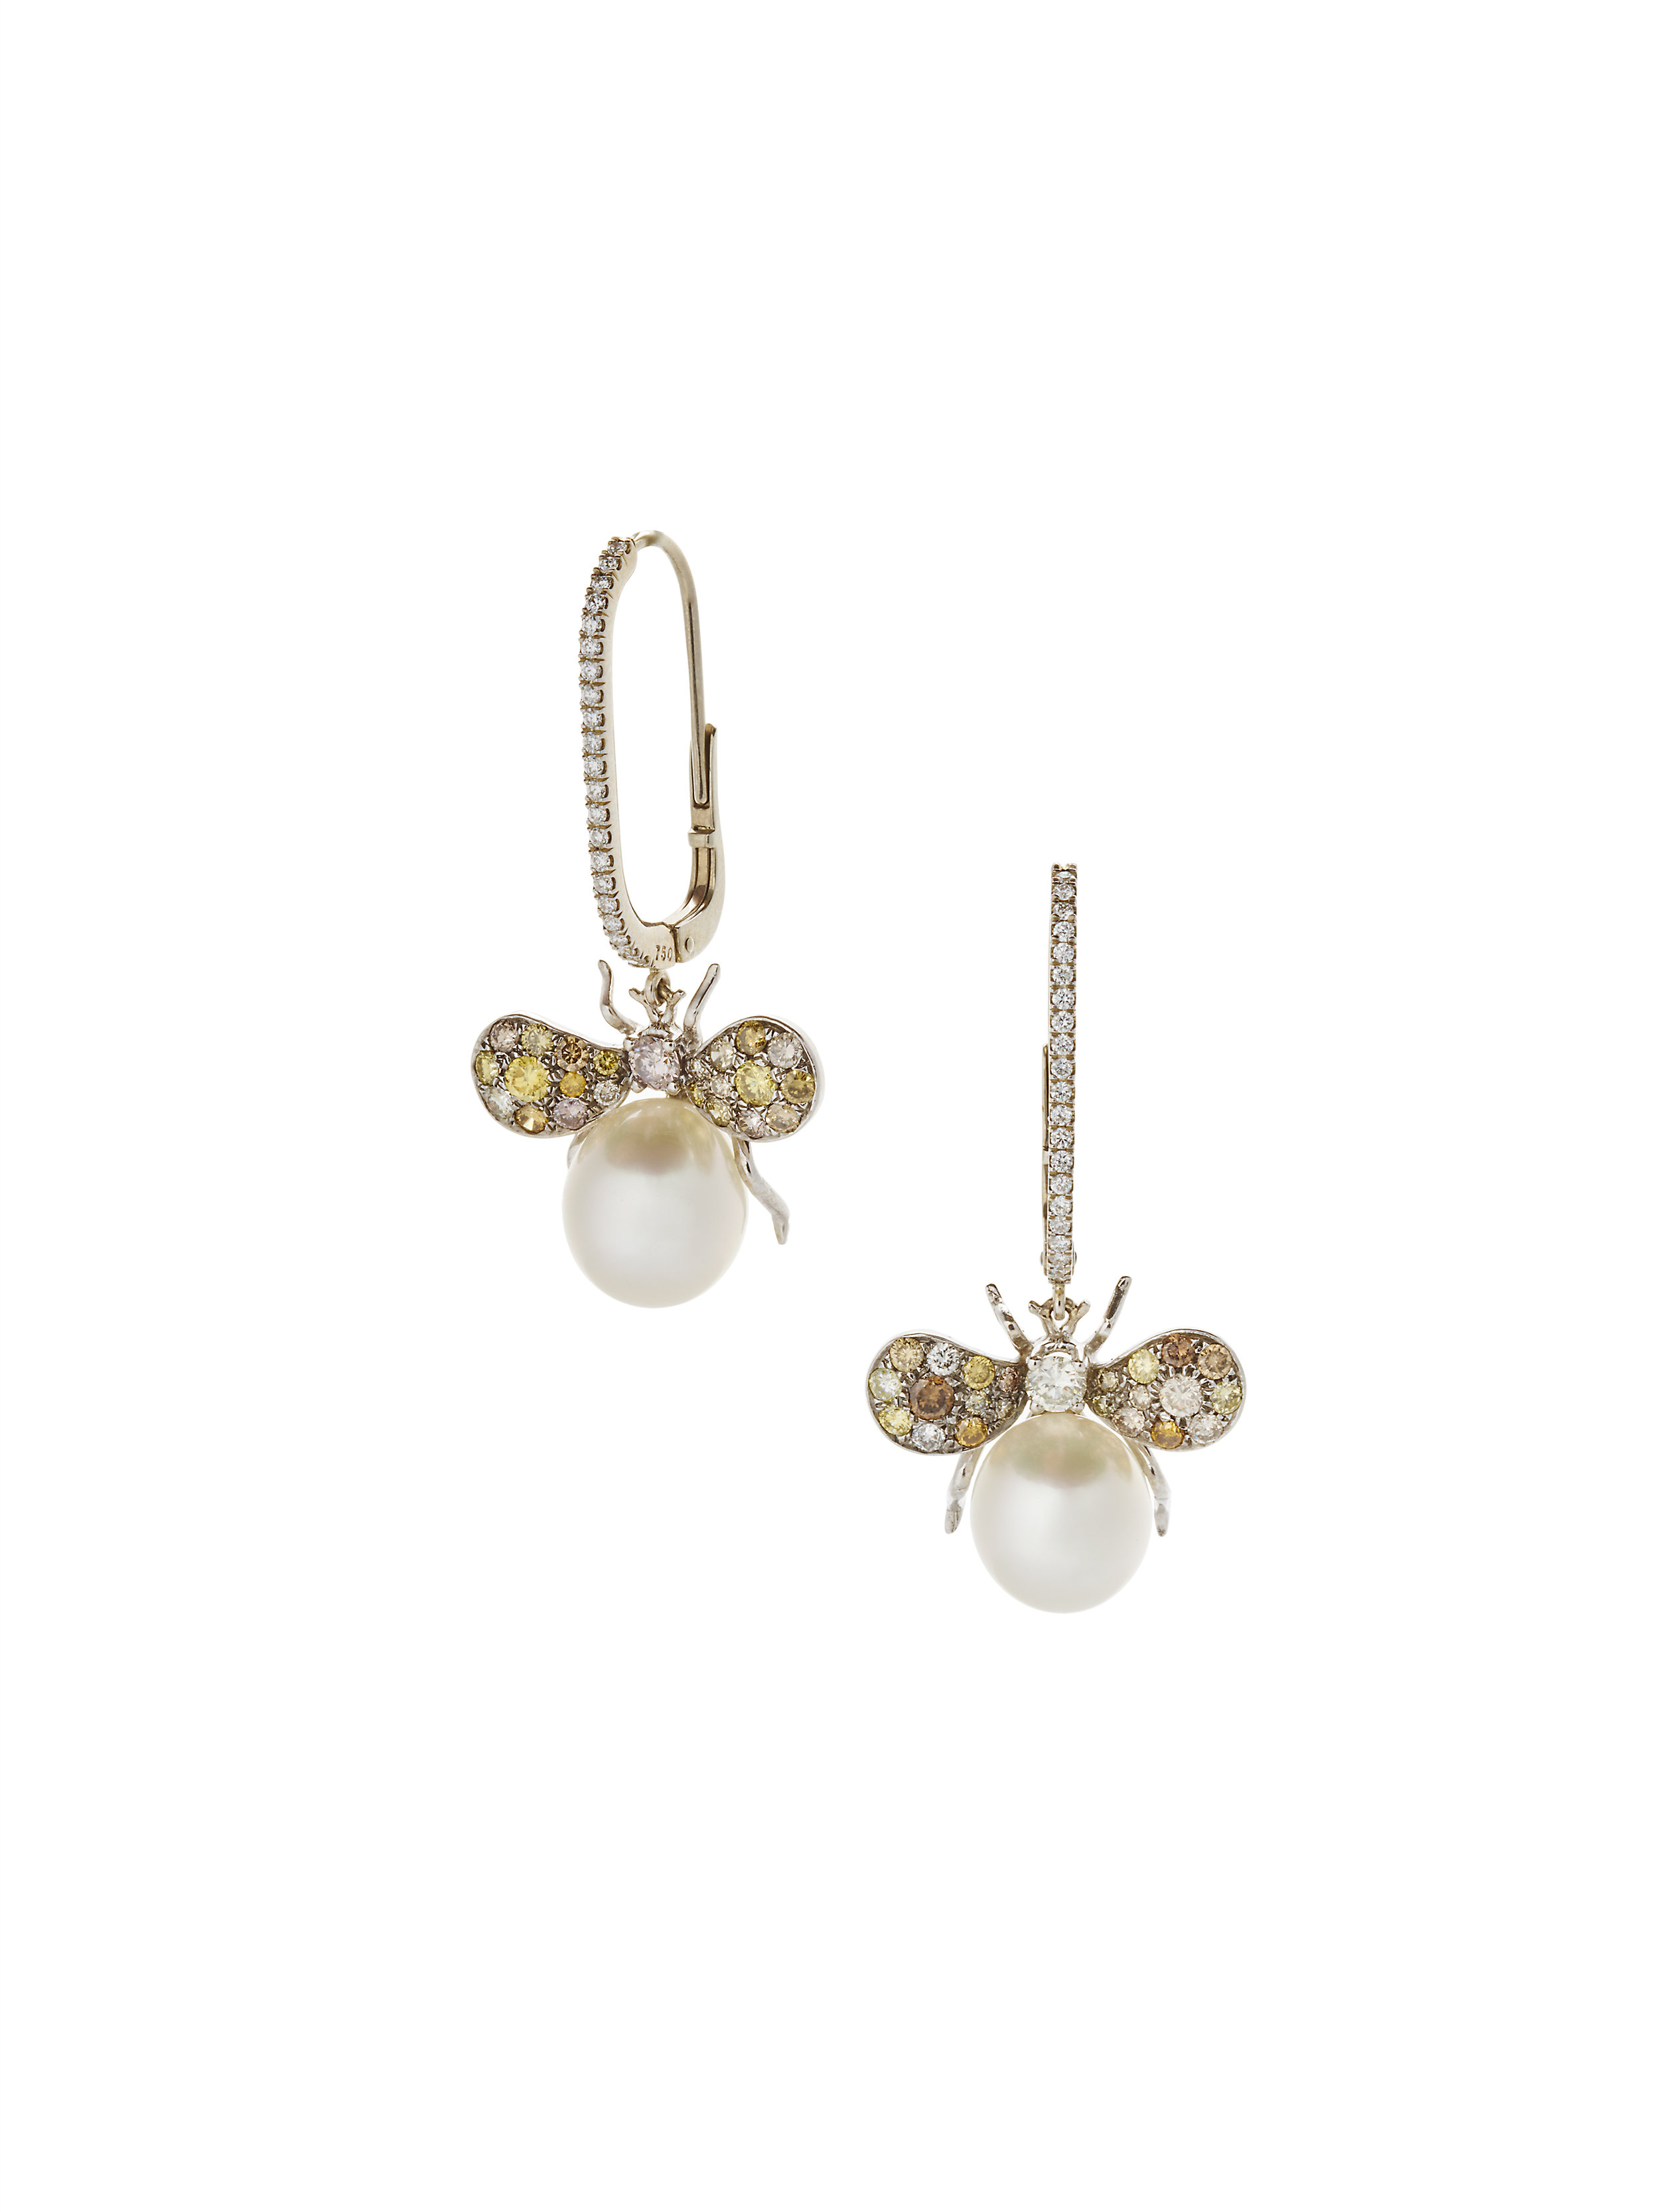 SAYURI BUG EARRINGS    18K GOLD SOUTH SEA PEARLS 2.2 CT OF DIAMONDS      Contact for inquiry